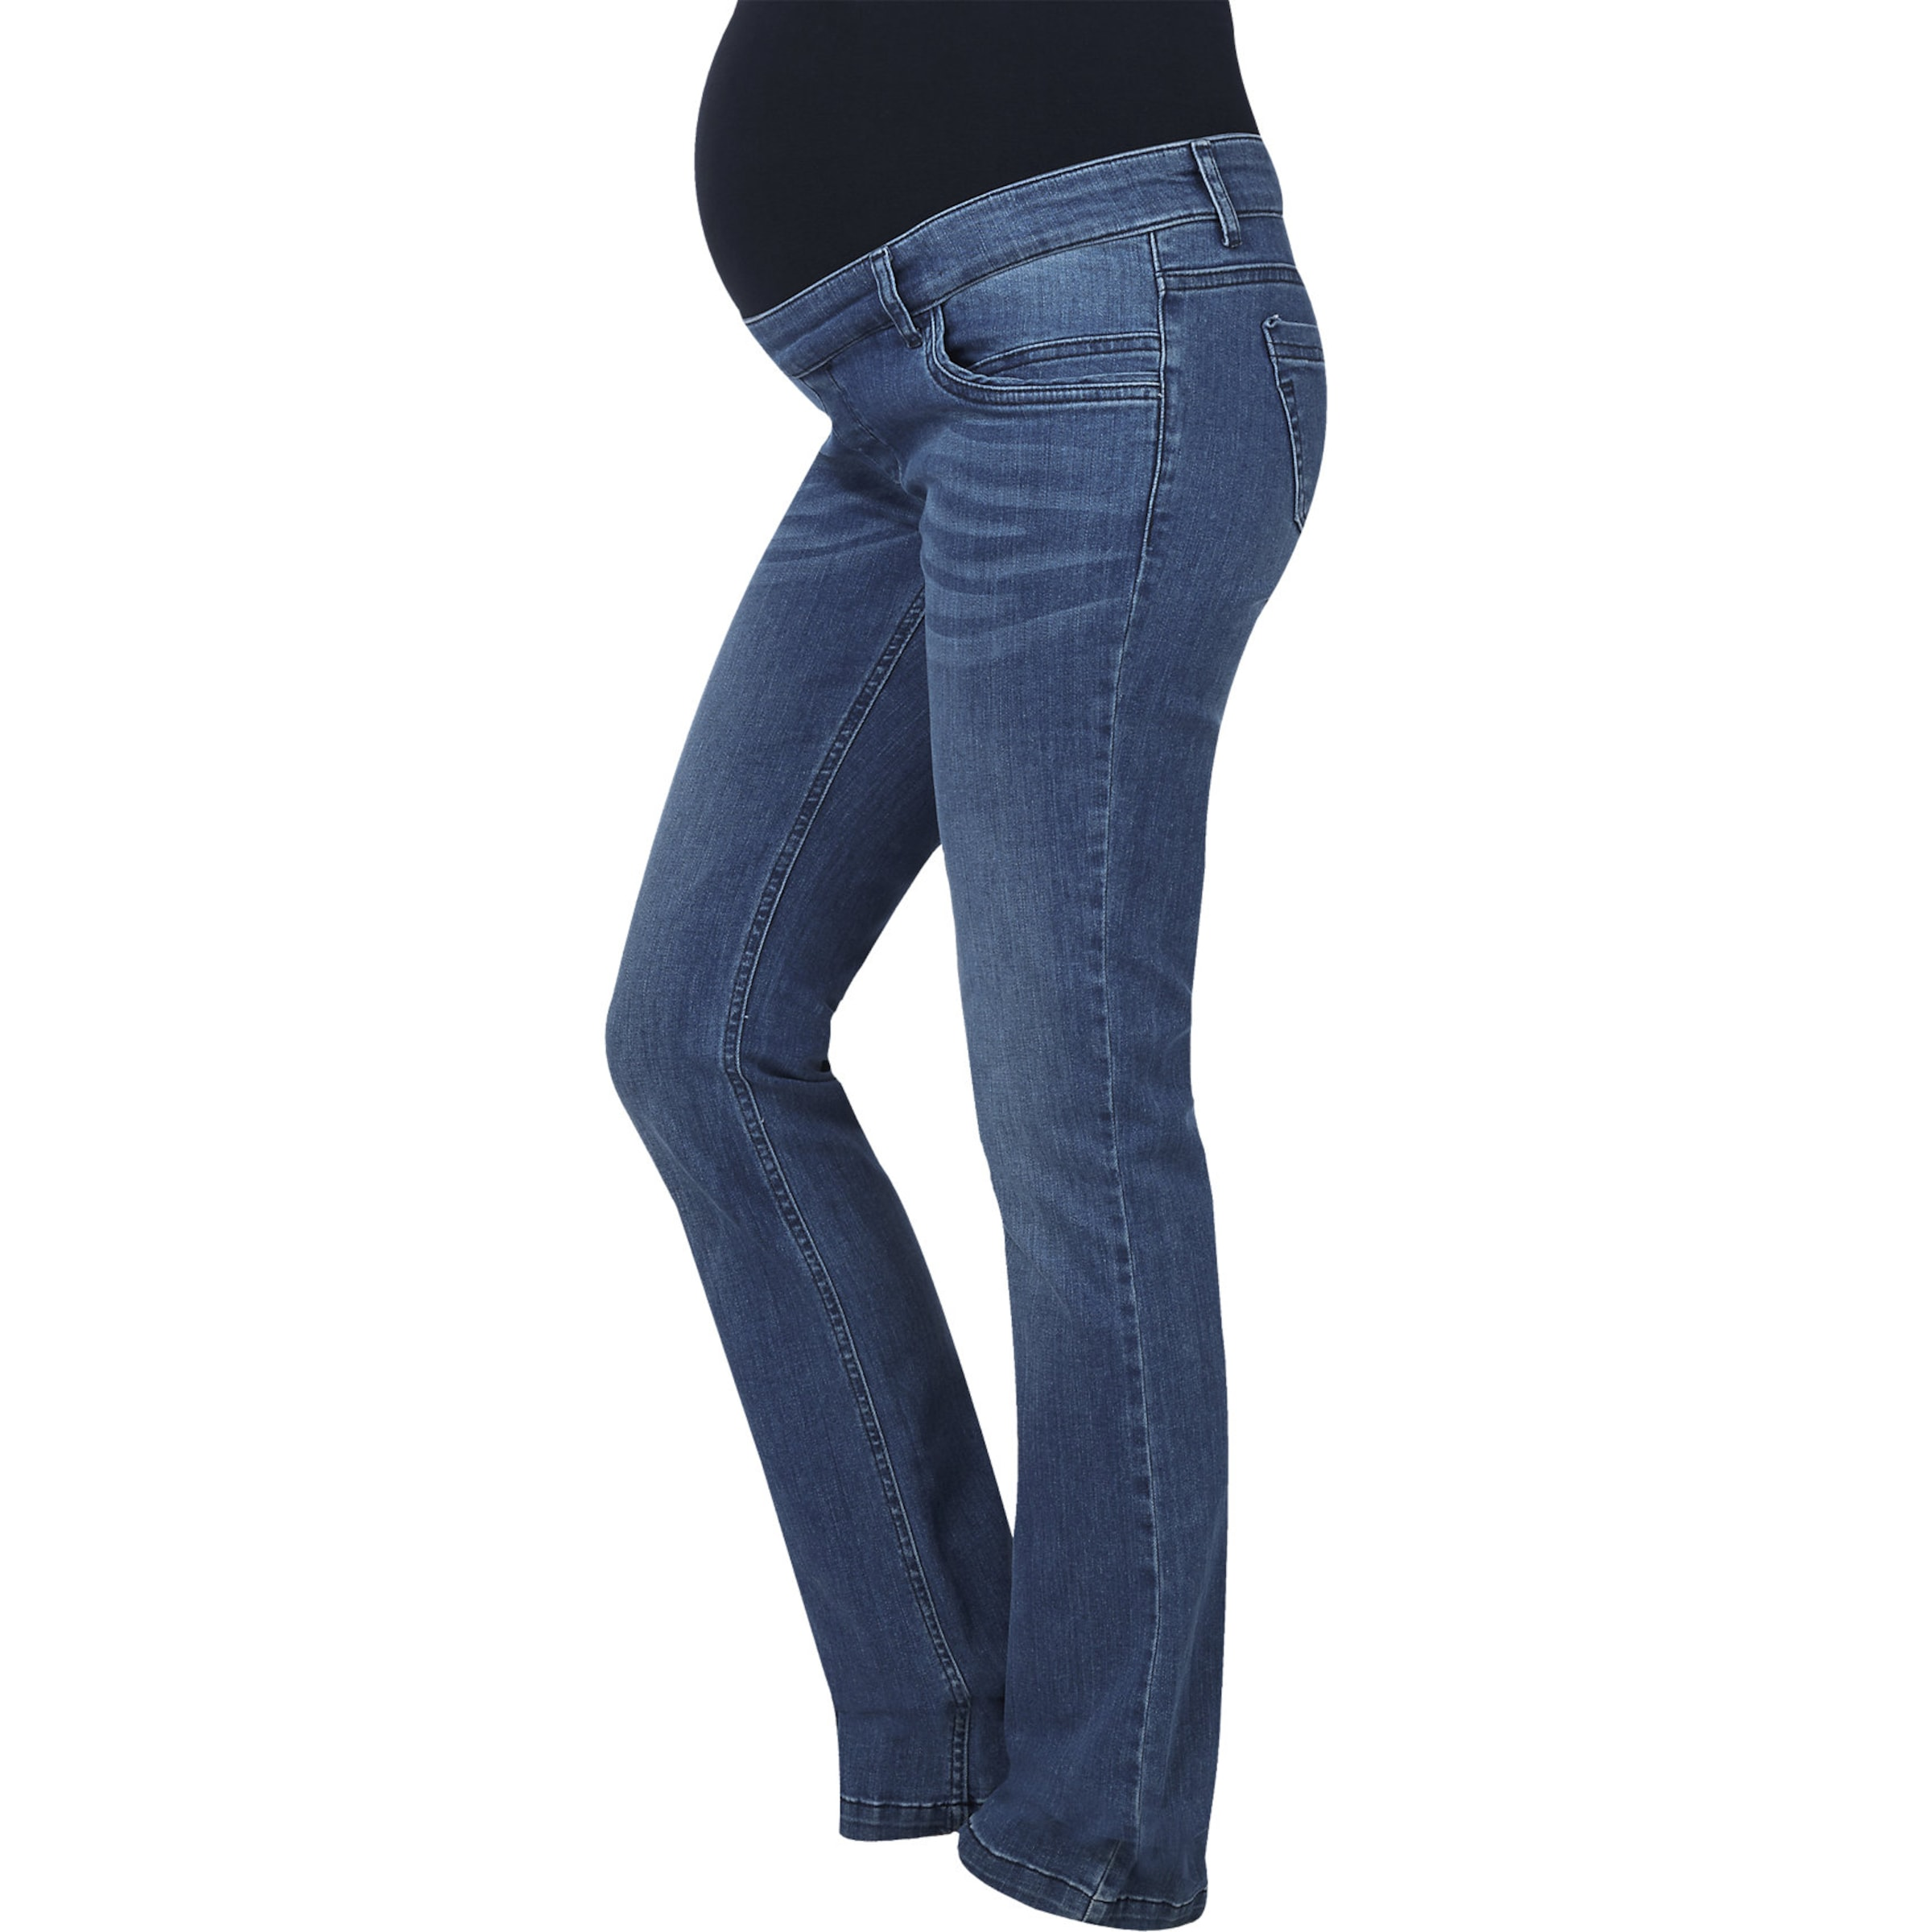 Denim Bellybutton Blue Denim Blue Bellybutton In In Umstandsjeans Umstandsjeans gyv6Y7bf